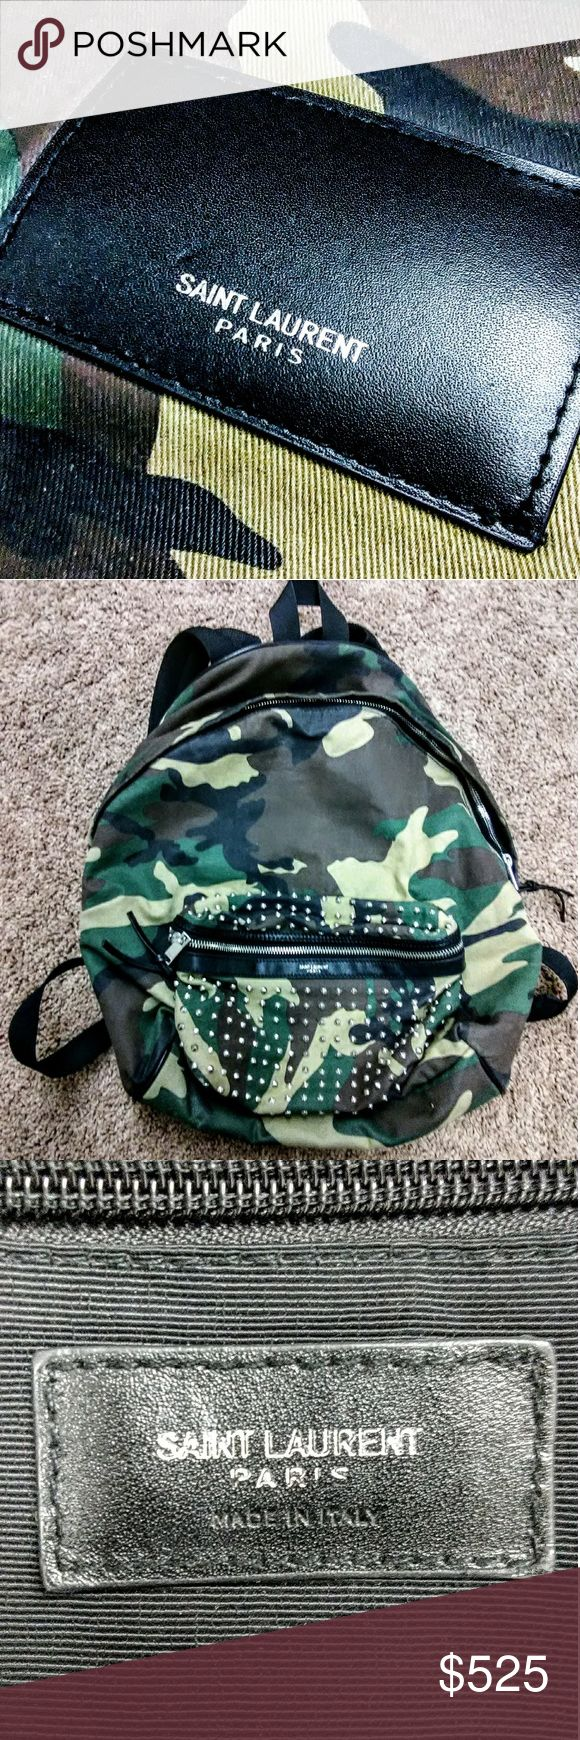 """Authentic Saint Laurent Camo hunting Backpack 2016 100% GENUINE: Yves Saint Laurent Paris Spring 2016 Nylon Canvas Camouflage Classic Hunting Backpack with metal studs. Retail value: $1290  The bag has been used- I miraculously found it at a garage sale! I will be having it professionally dry cleaned to ensure that it arrives with the """"brand new"""" feel that you expect & love.  There are no signs of wear/damage.. Customer satisfaction is my #1 priority so please if you have questions don't…"""